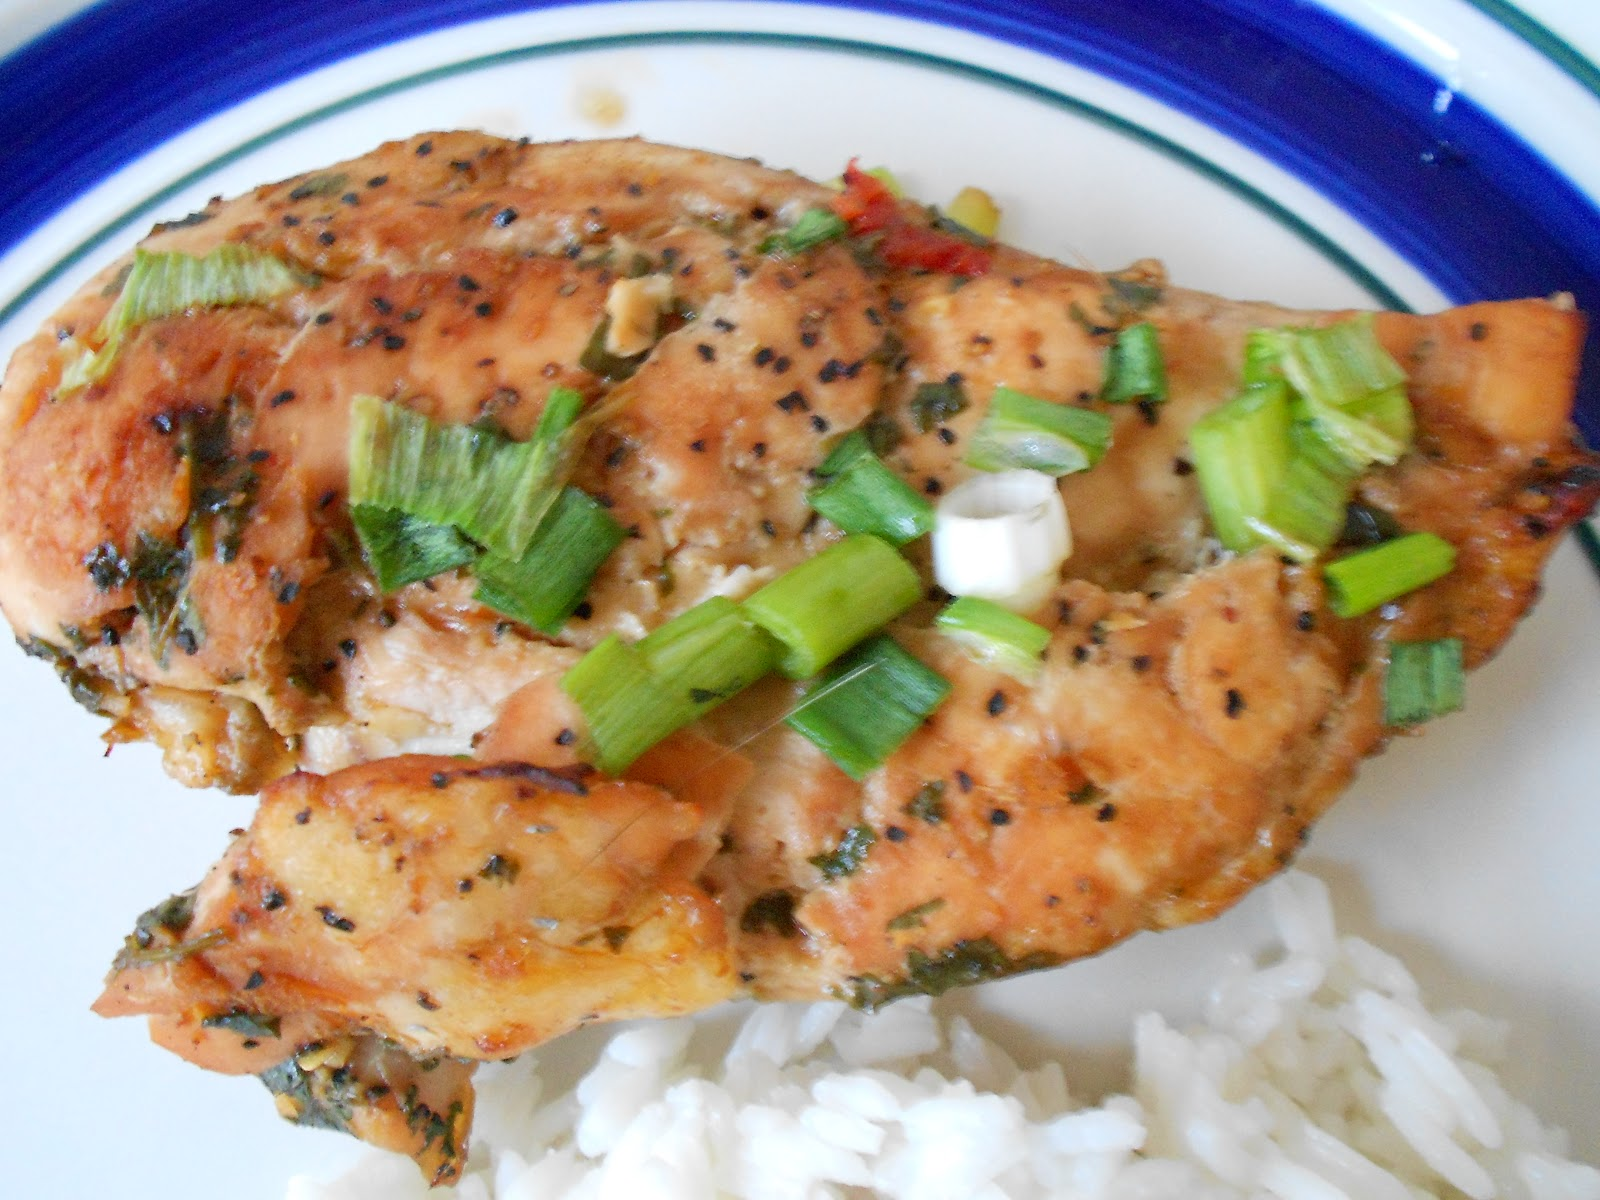 The Pub and Grub Forum: Ginger and Cilantro Baked Tilapia ...